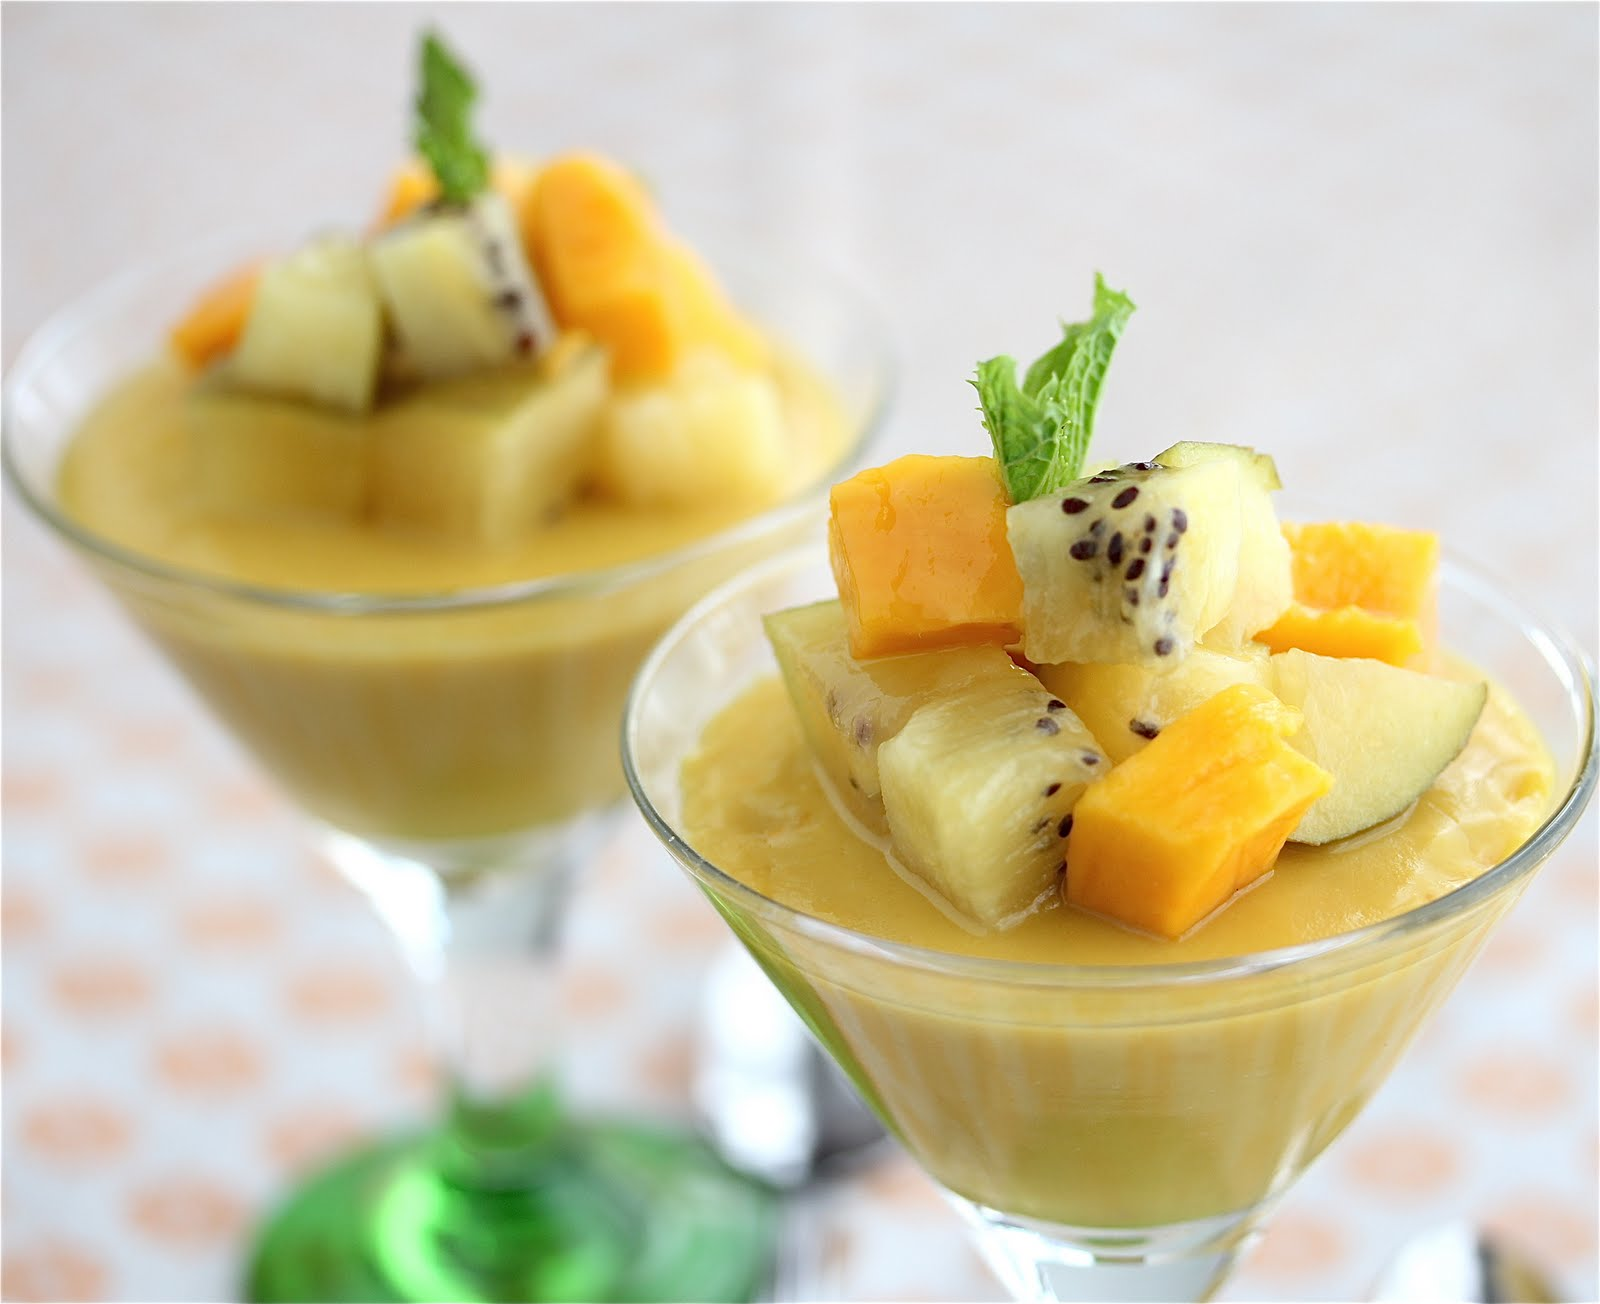 vegan mango panna cotta with kiwi mango and strawberries. Black Bedroom Furniture Sets. Home Design Ideas